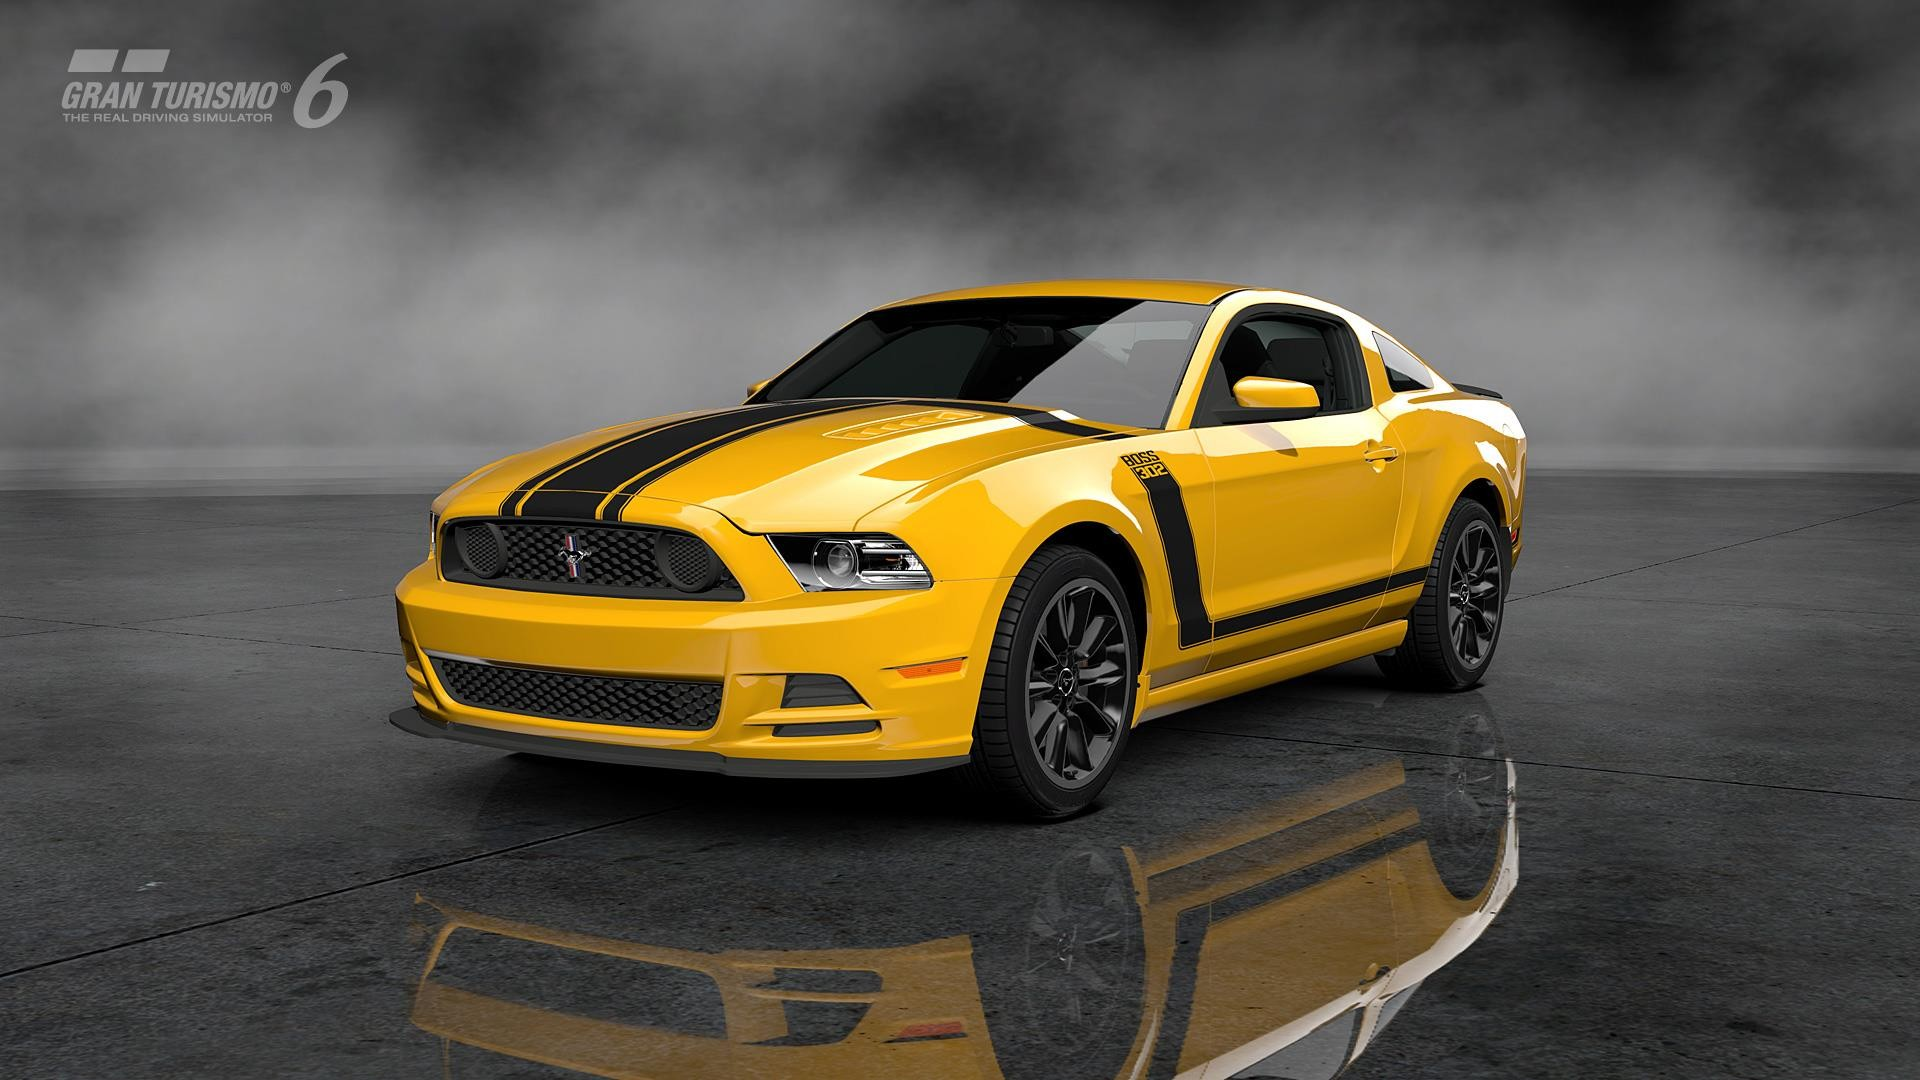 Project Cars 2 Deluxe Edition Wallpaper Ford Mustang Boss 302 Gran Turismo 6 Car Video Games